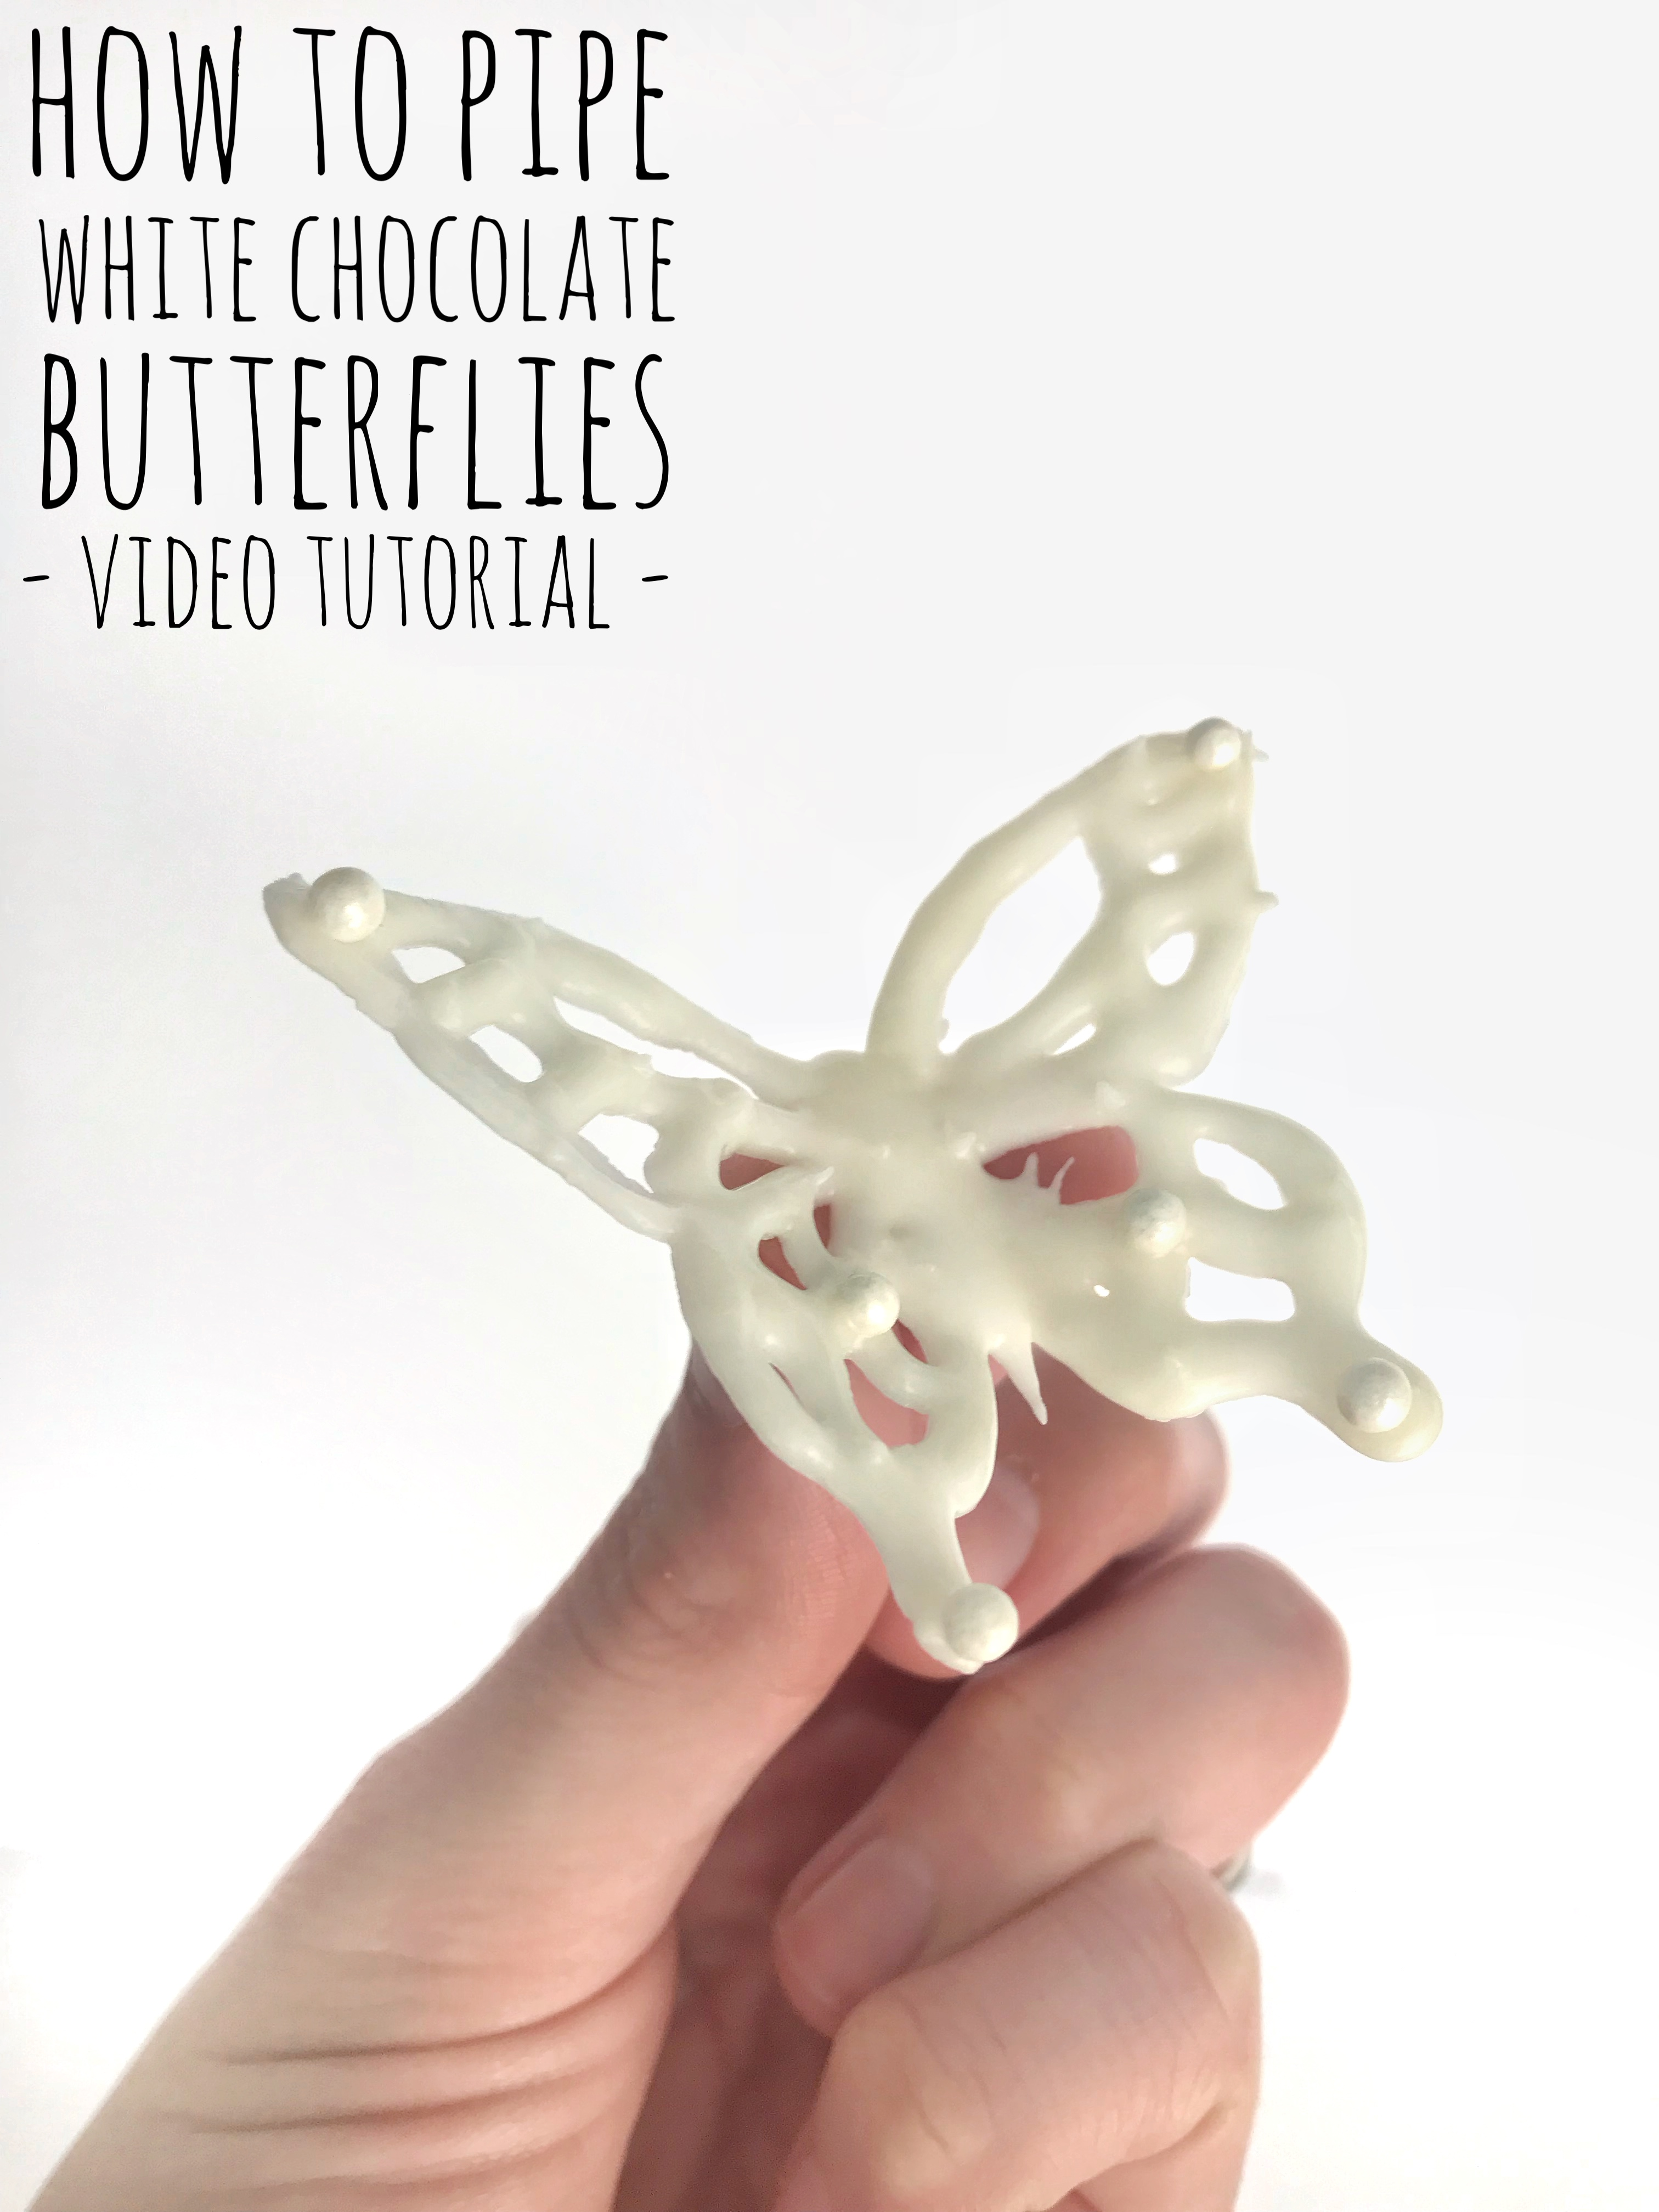 How To Pipe White Chocolate Butterflies Video Tutorial